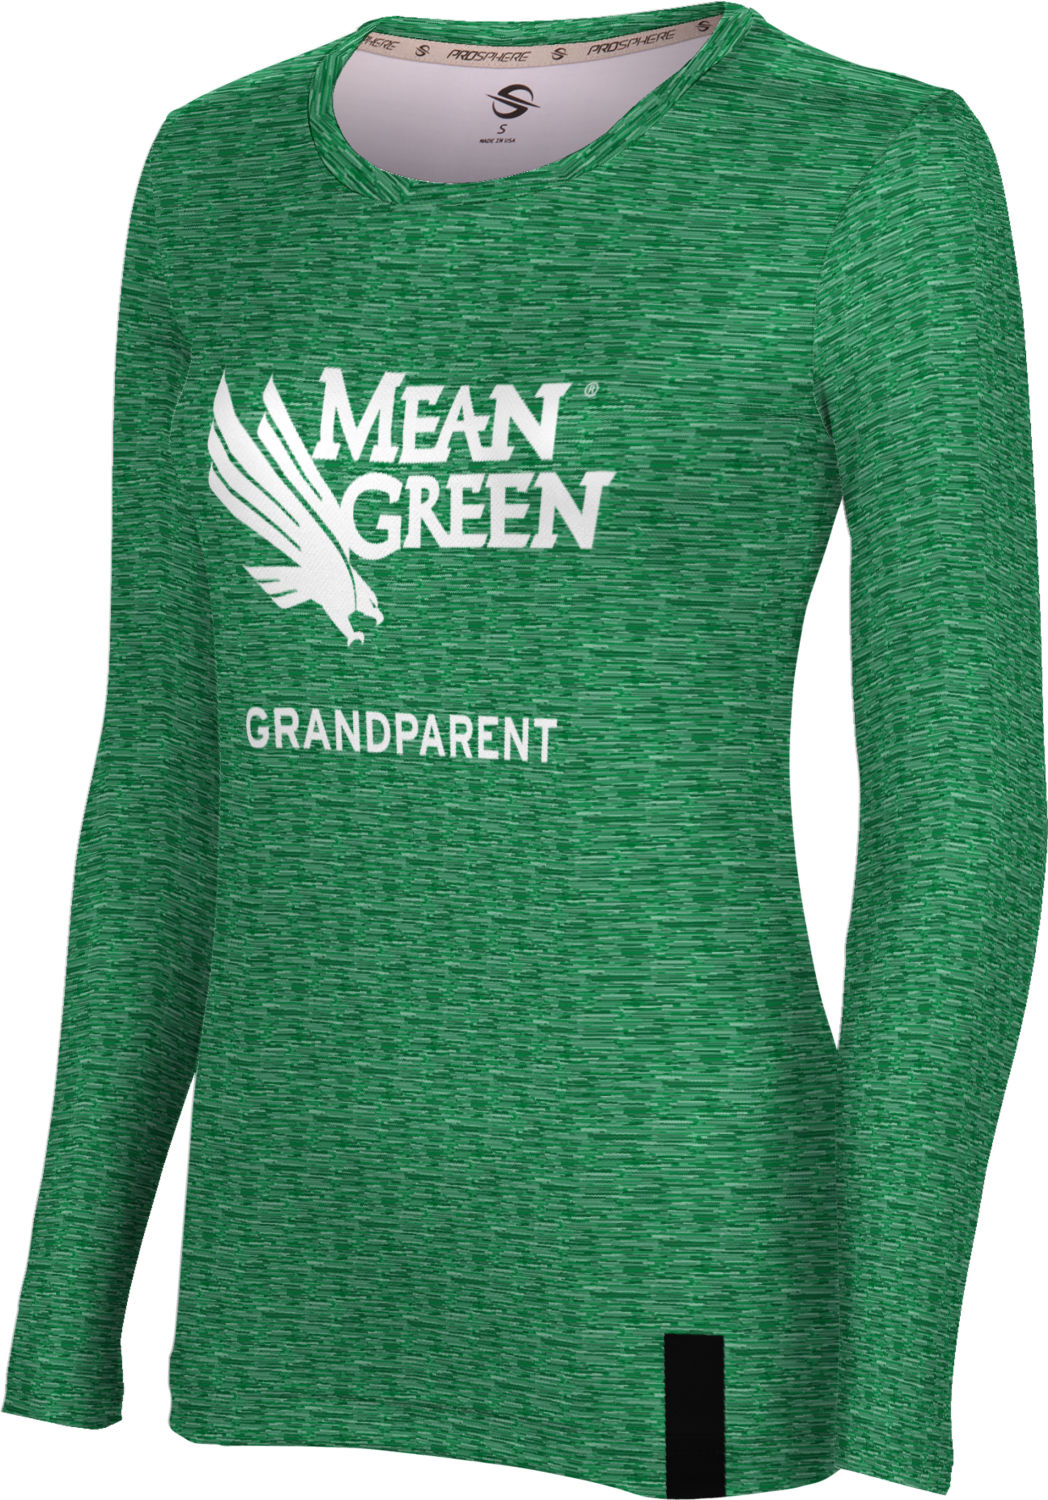 ProSphere Grandparent Women's Long Sleeve Tee